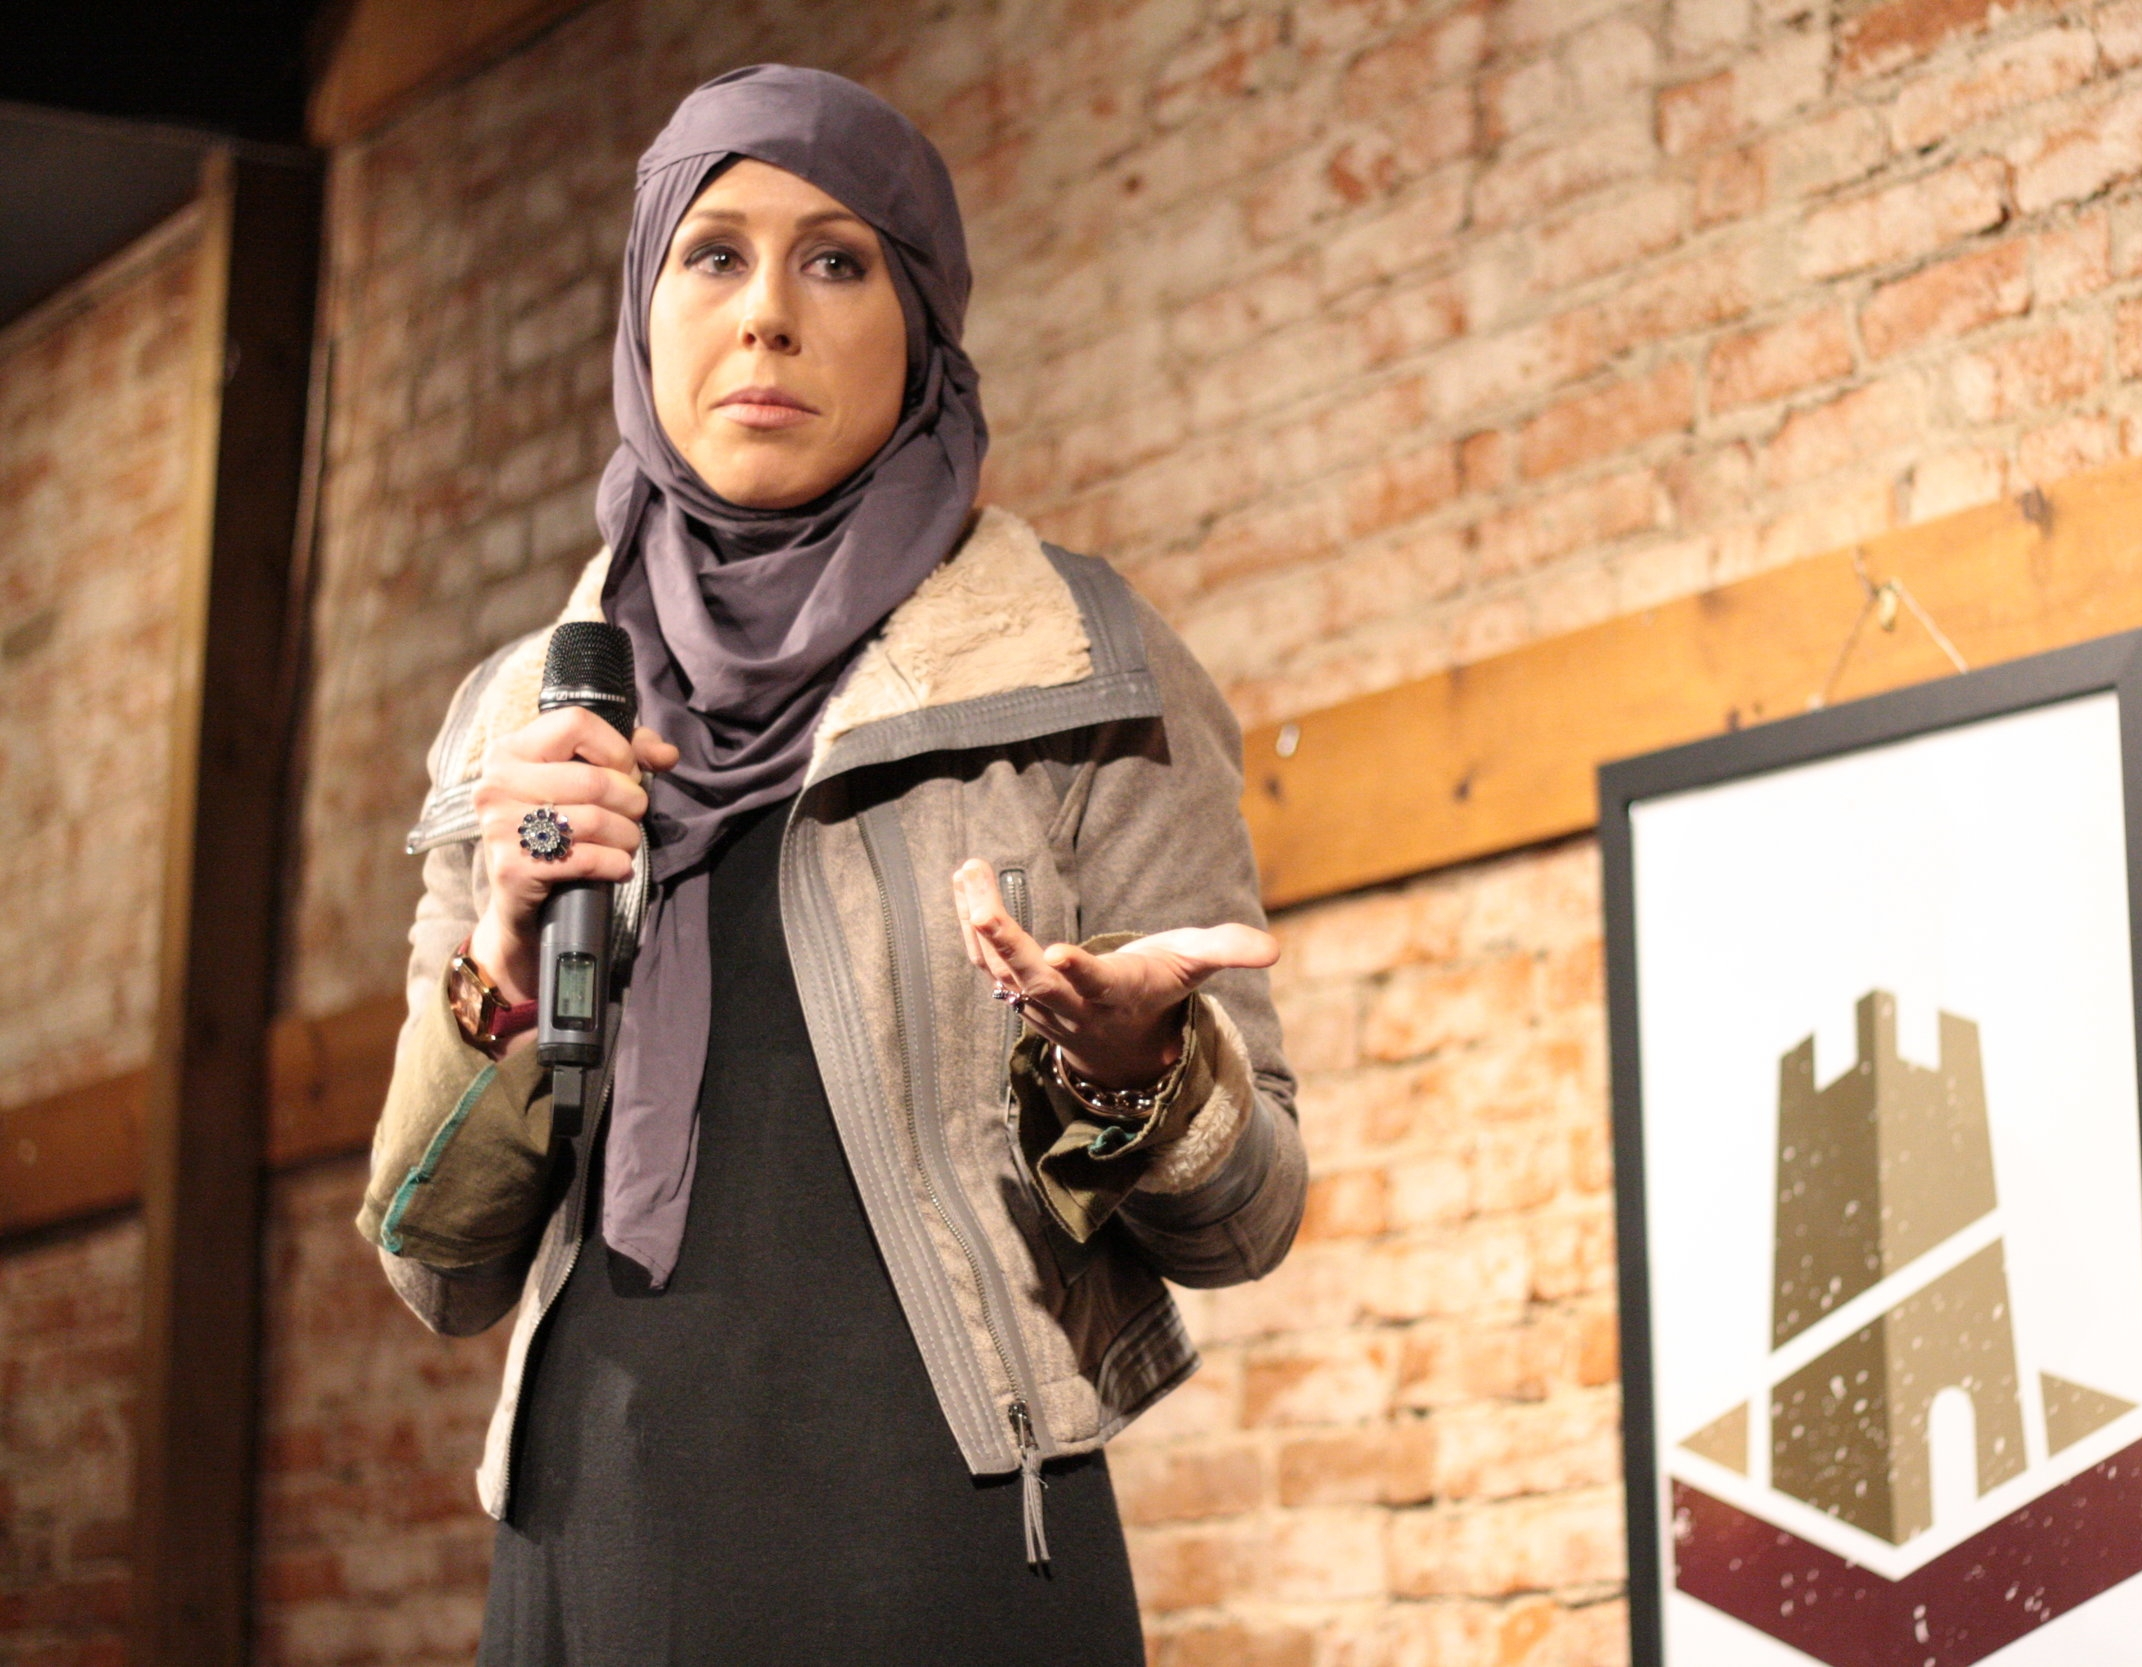 REGINA MUSTAFA    Interfaith Dialouge  Regina shared some common misunderstandings about the Muslim faith and why interfaith dialogue is so important.